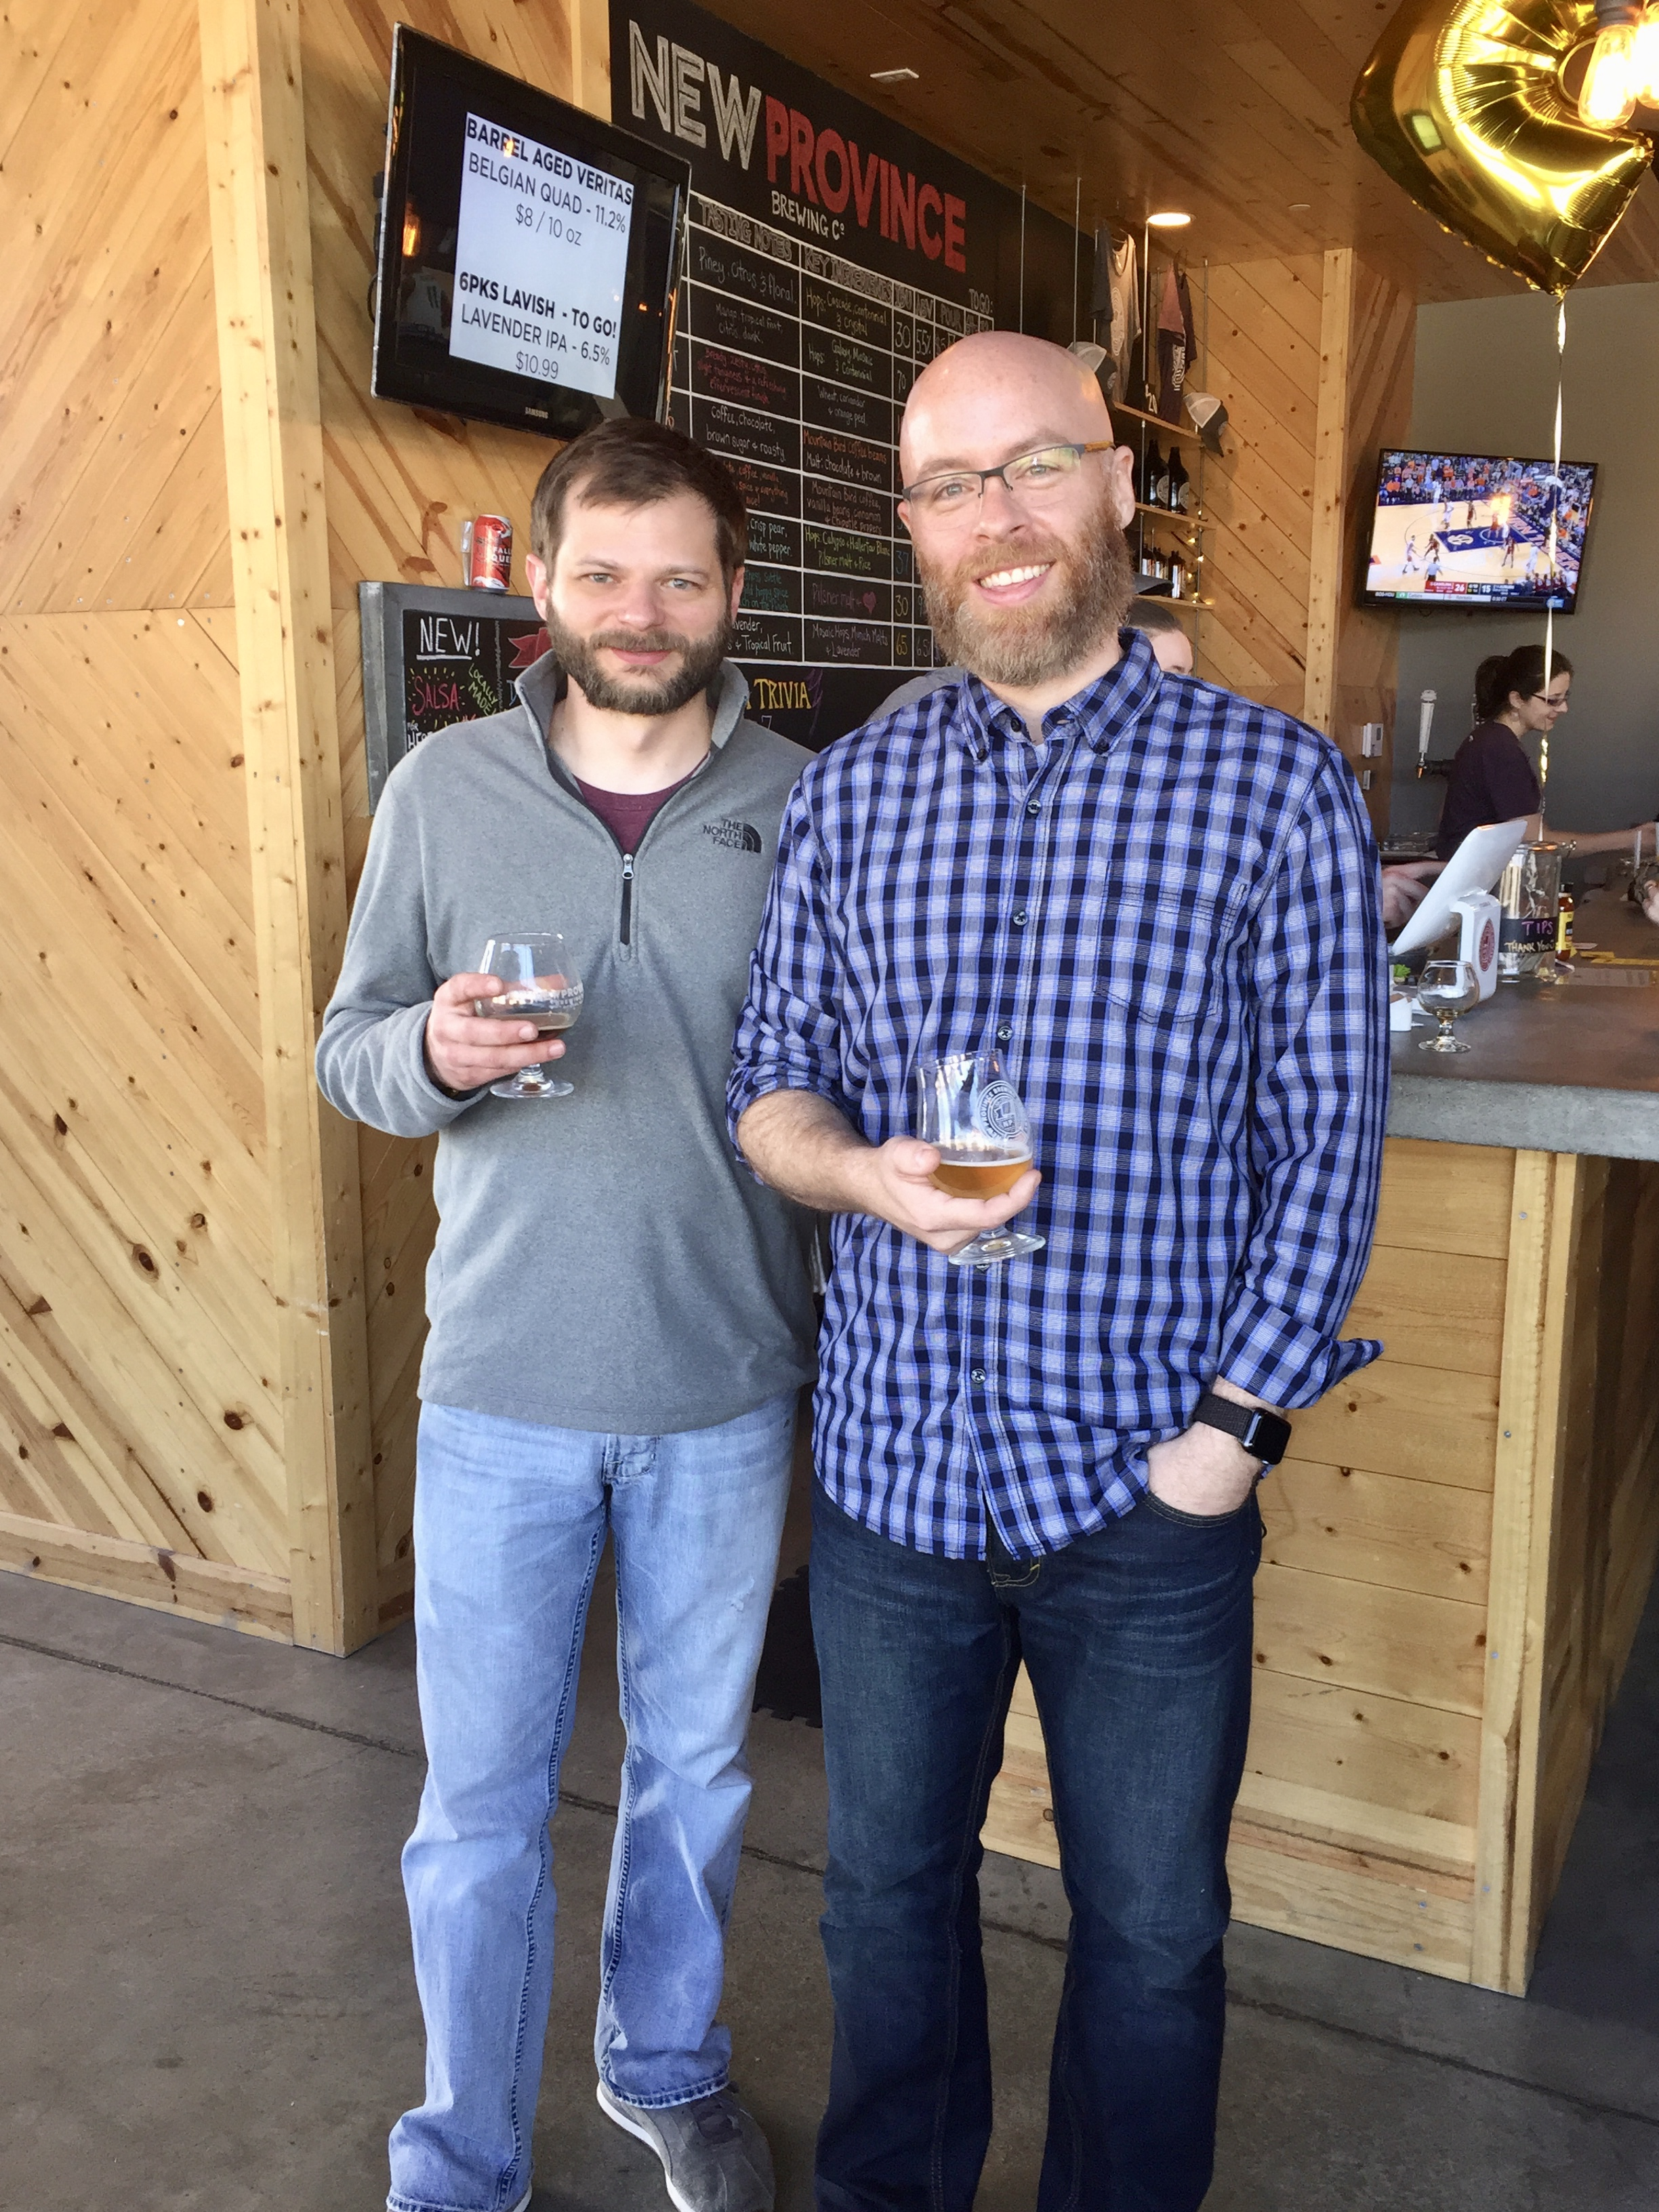 """That's New Province head brewer Kort Castleberry on the left and me on the right. I call this picture, """"Battle of the Beards."""" I have since shaved, Kort has not. Has anyone ever seen him without a beard? What's he hiding under there?"""